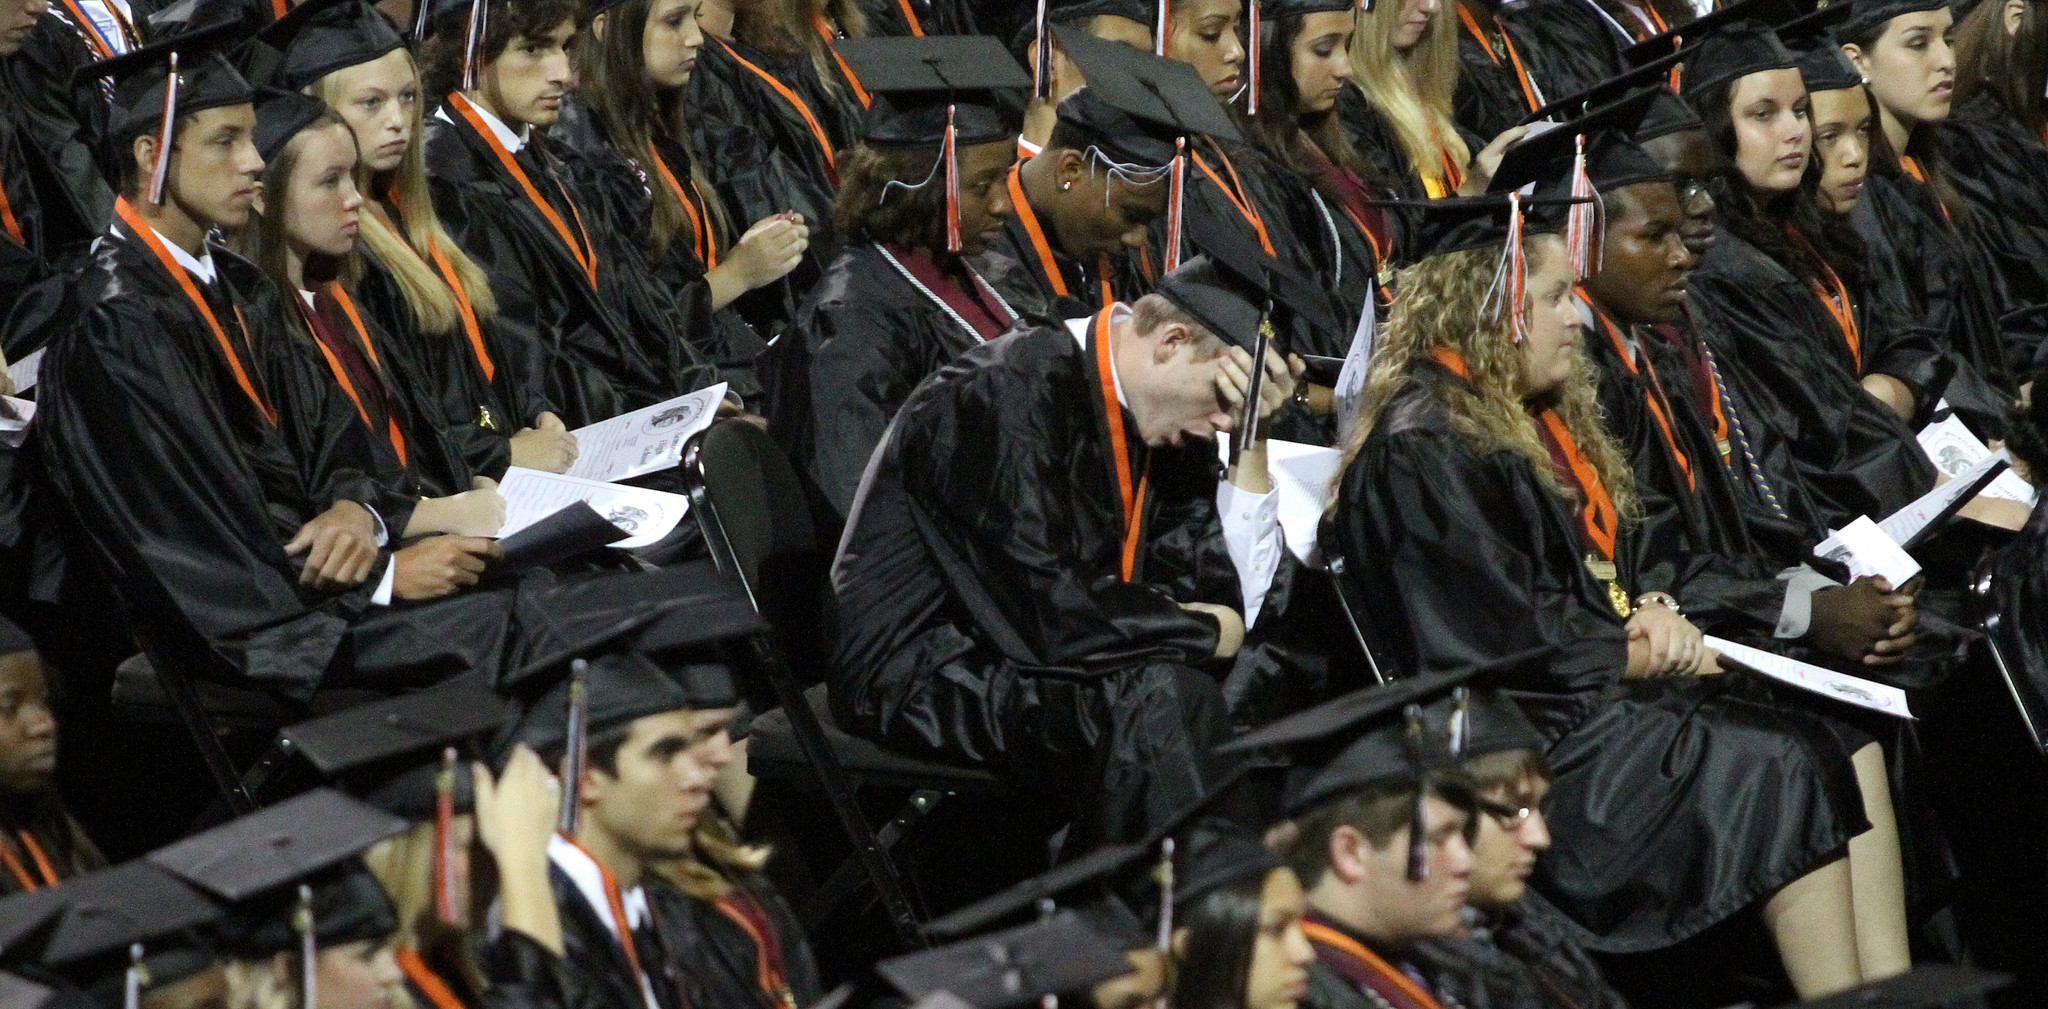 Seminole High School seniors during the Class of 2012 graduation ceremony, at the University of Central Florida Arena, Tuesday, May 29, 2012.